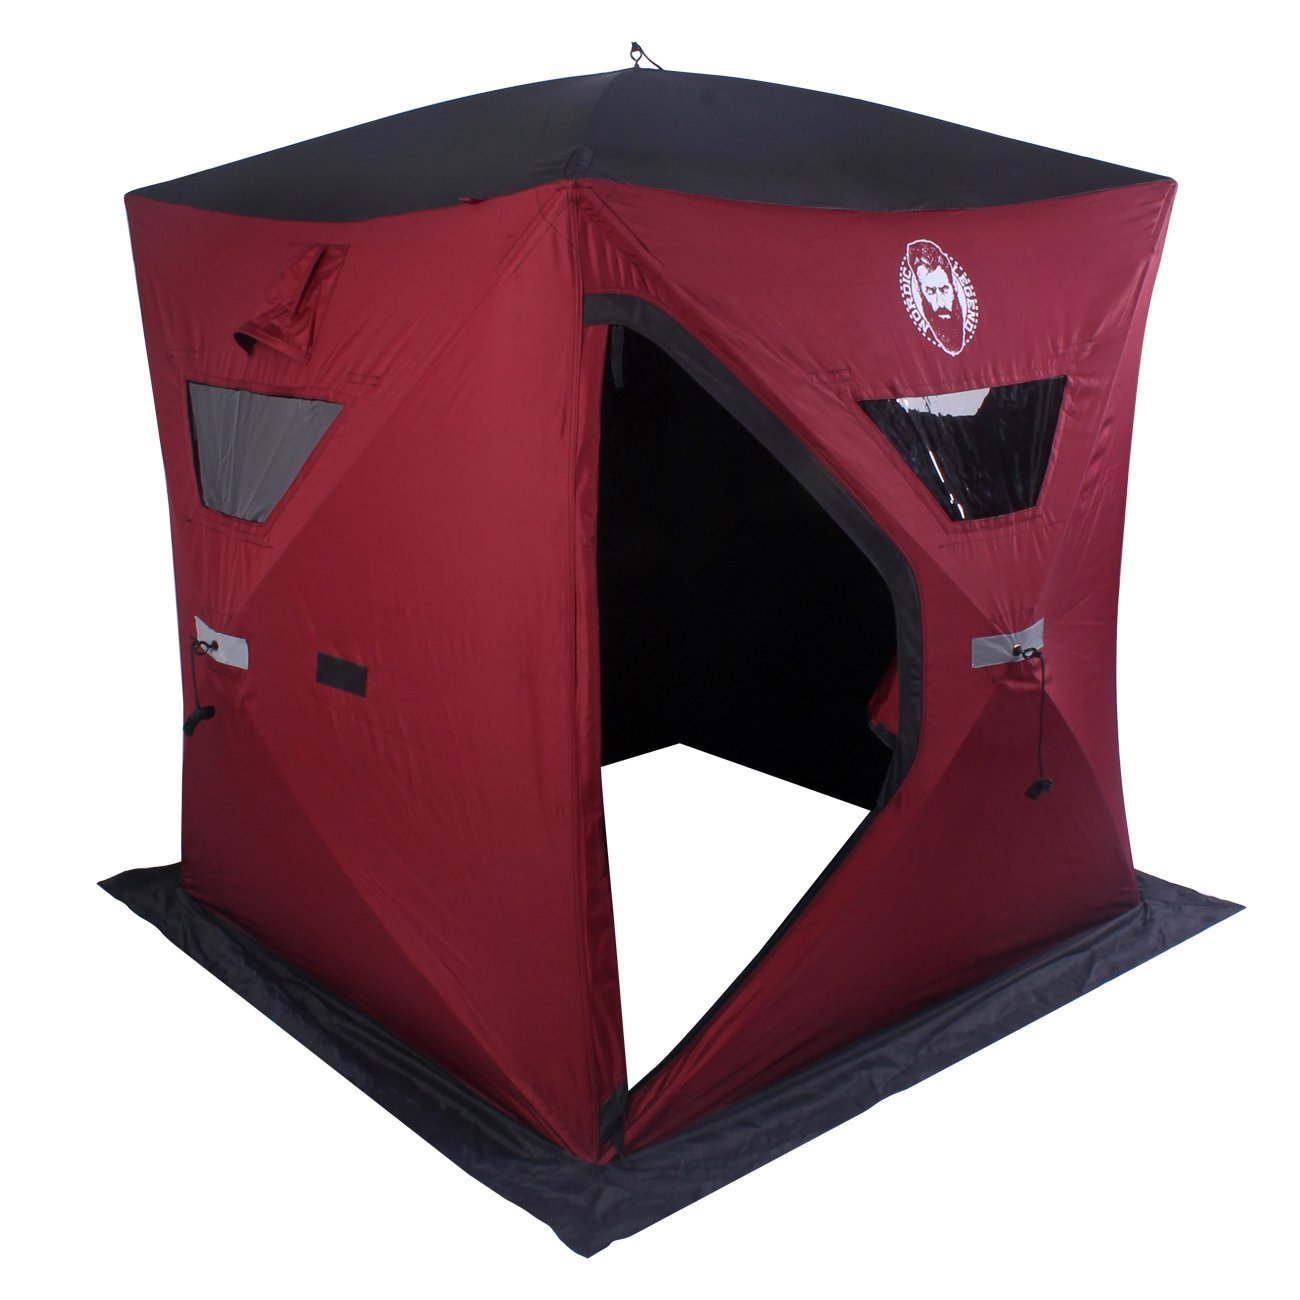 Nordic Legend Two Man Ice Shelter with FREE Bonus Ice Chairs! by Thunderbay